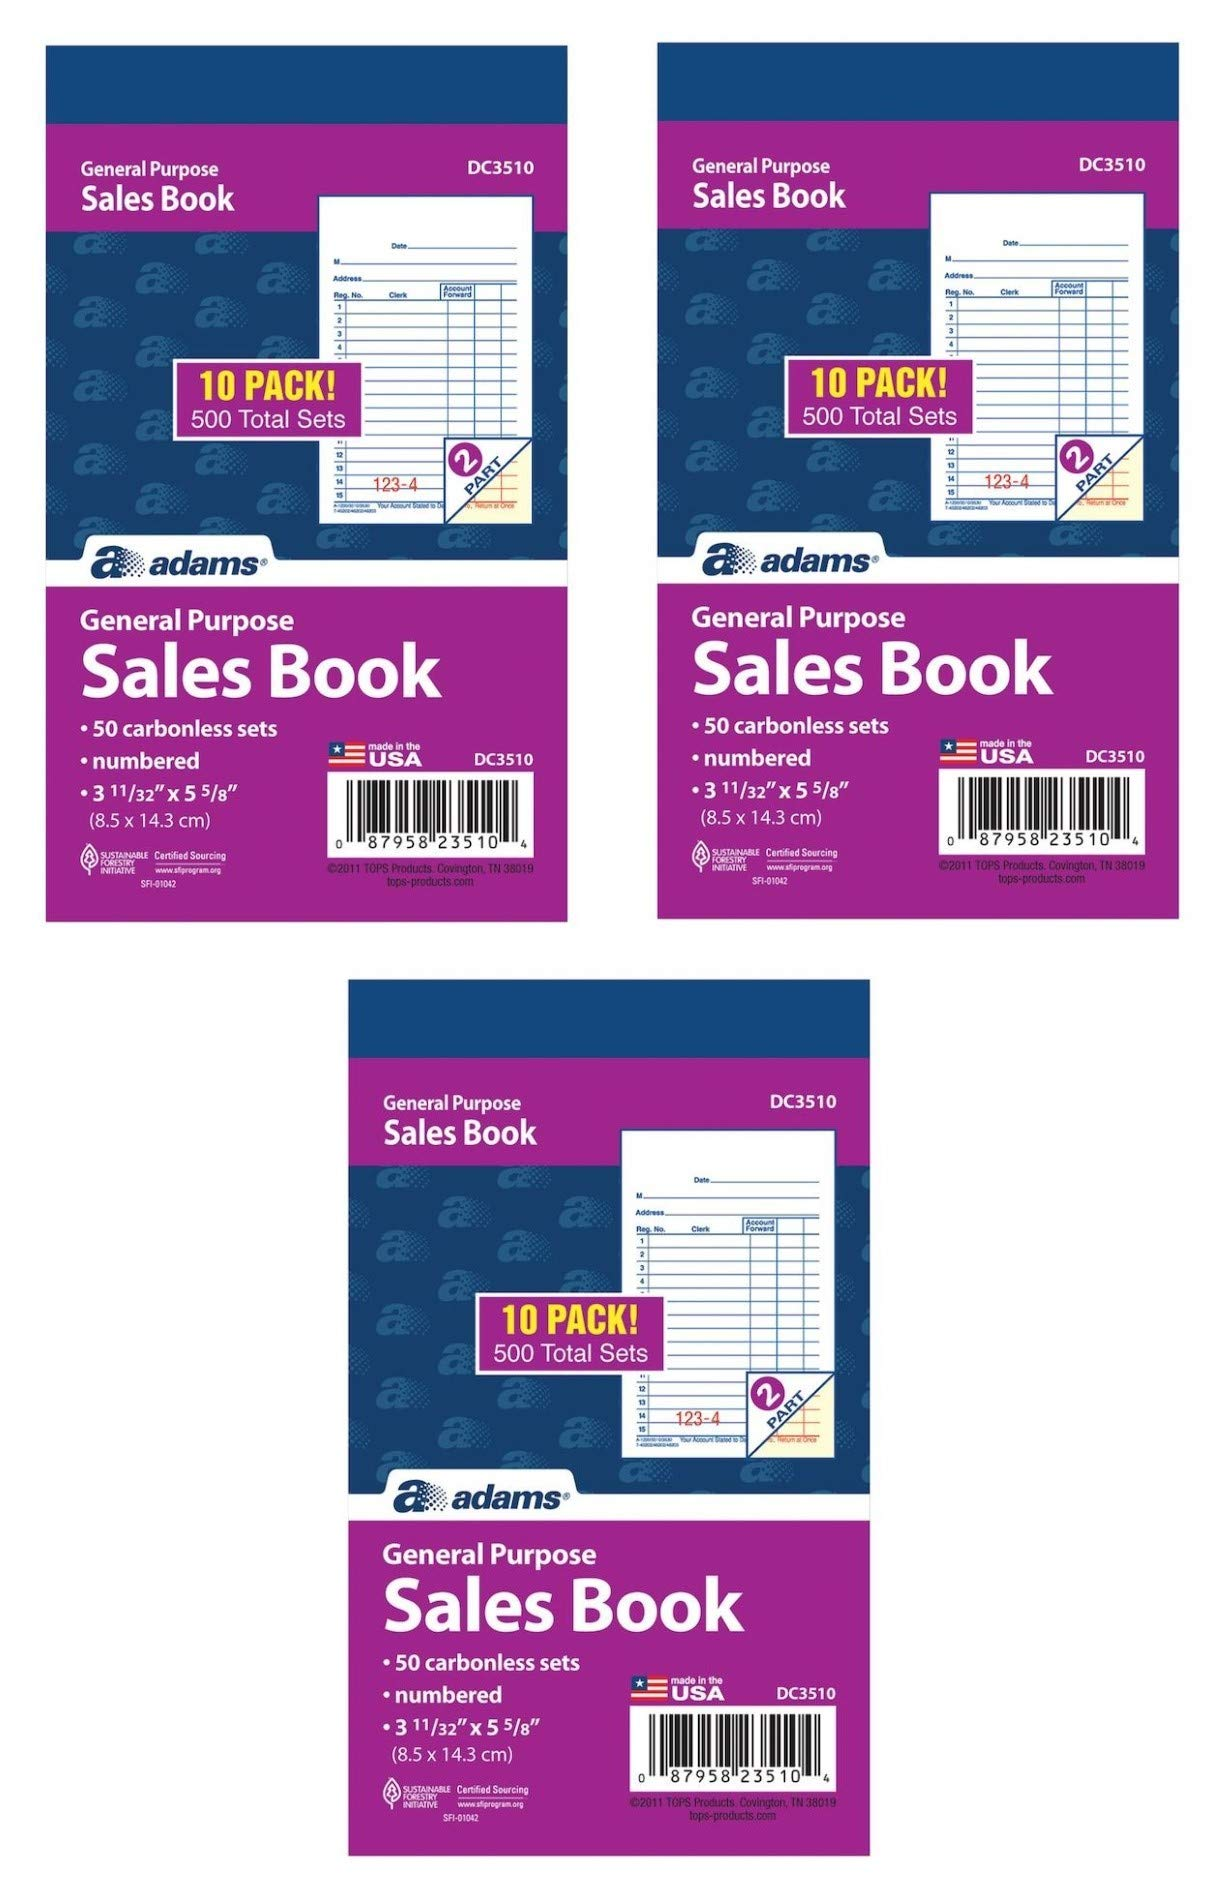 Adams General Purpose Sales Book, 2-Part, Carbonless, White/Canary, 3-11/32 x 5-5/8 Inches, 50 Sets/Book, 30 Books, 1500 Sets Total (DC3510)